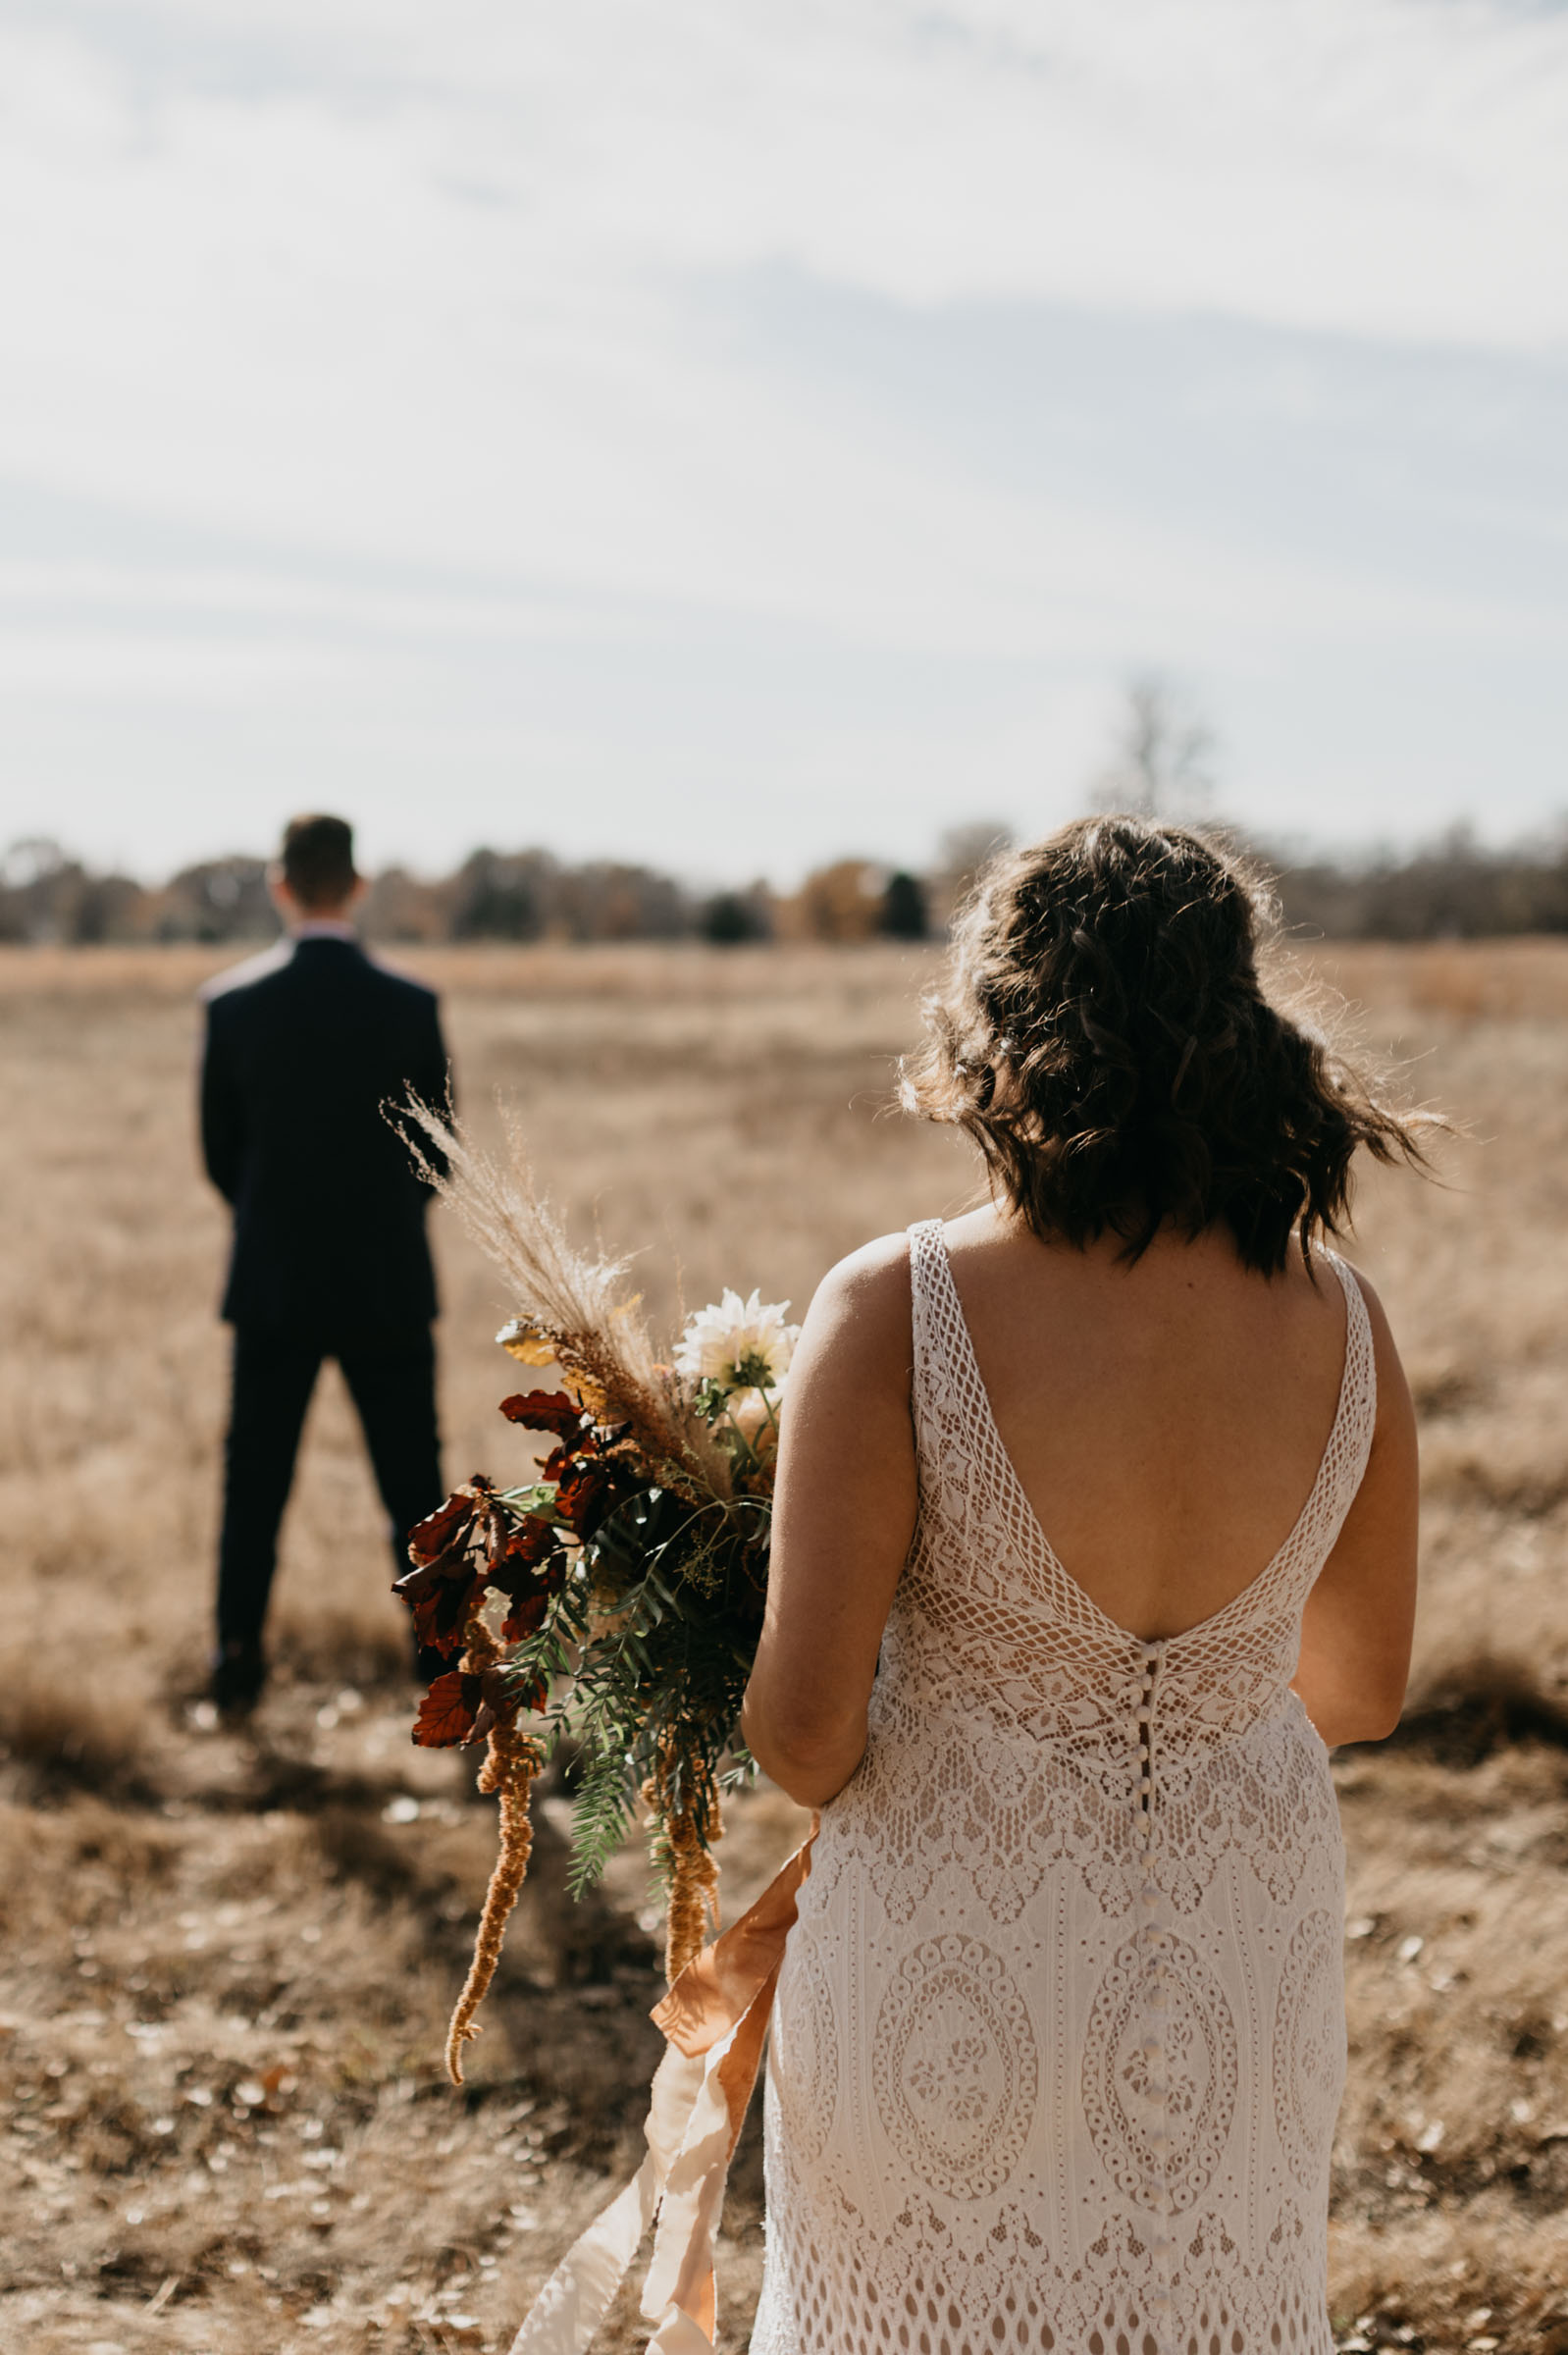 Bride and groom sharing their first look in an open field in east texas